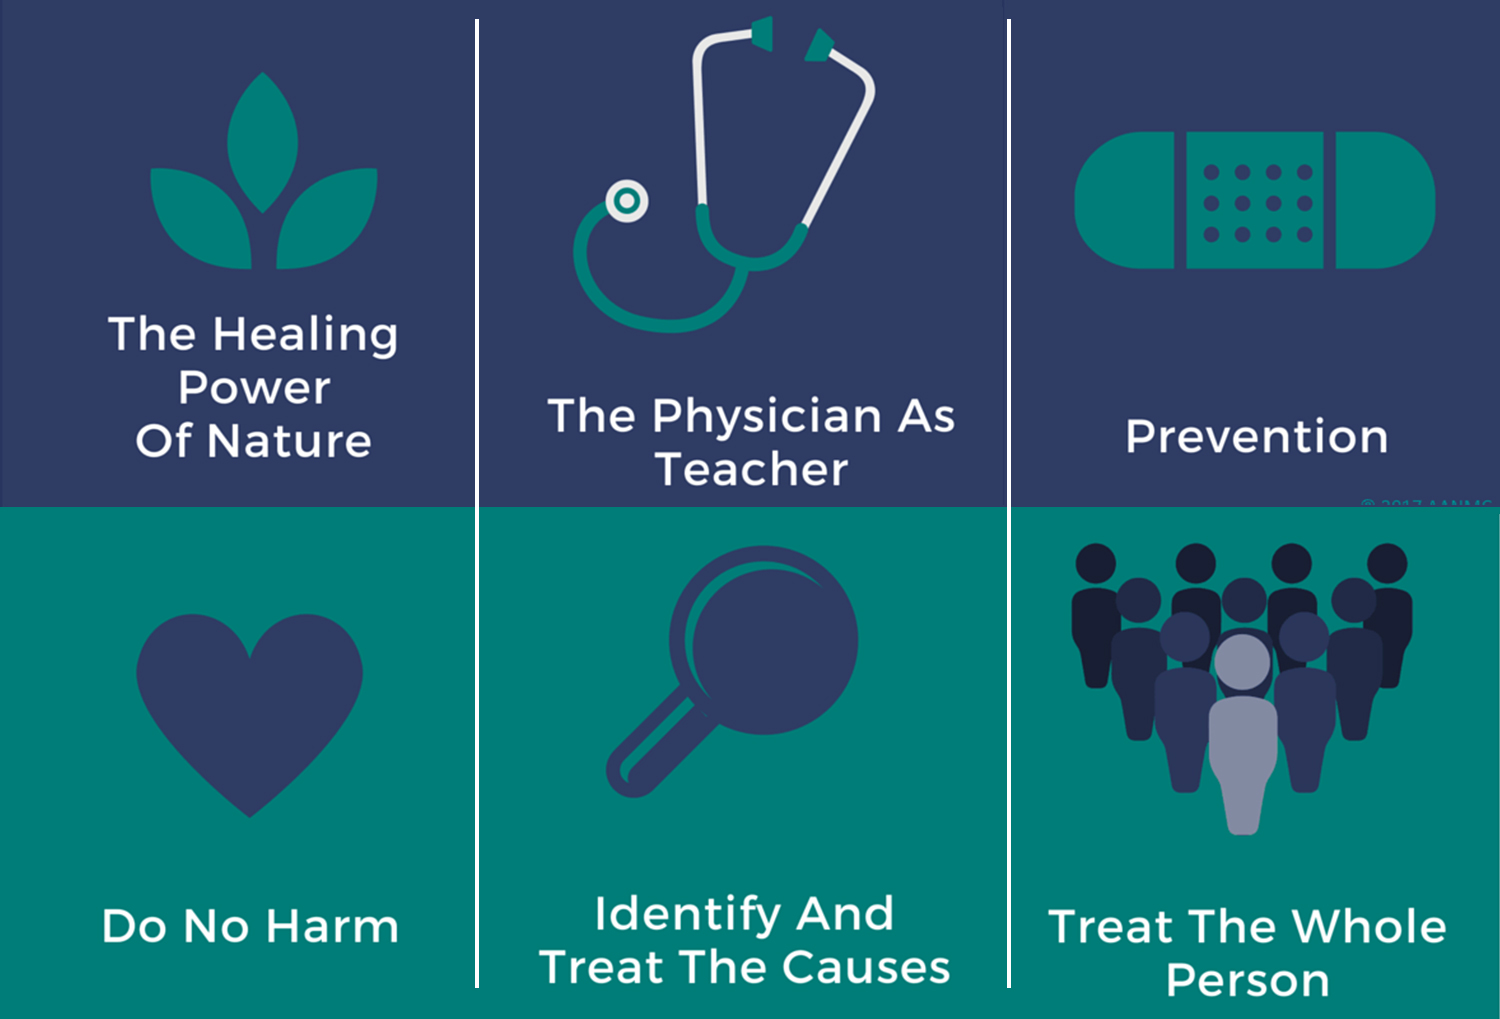 The Six Principles of Naturopathic Medicine